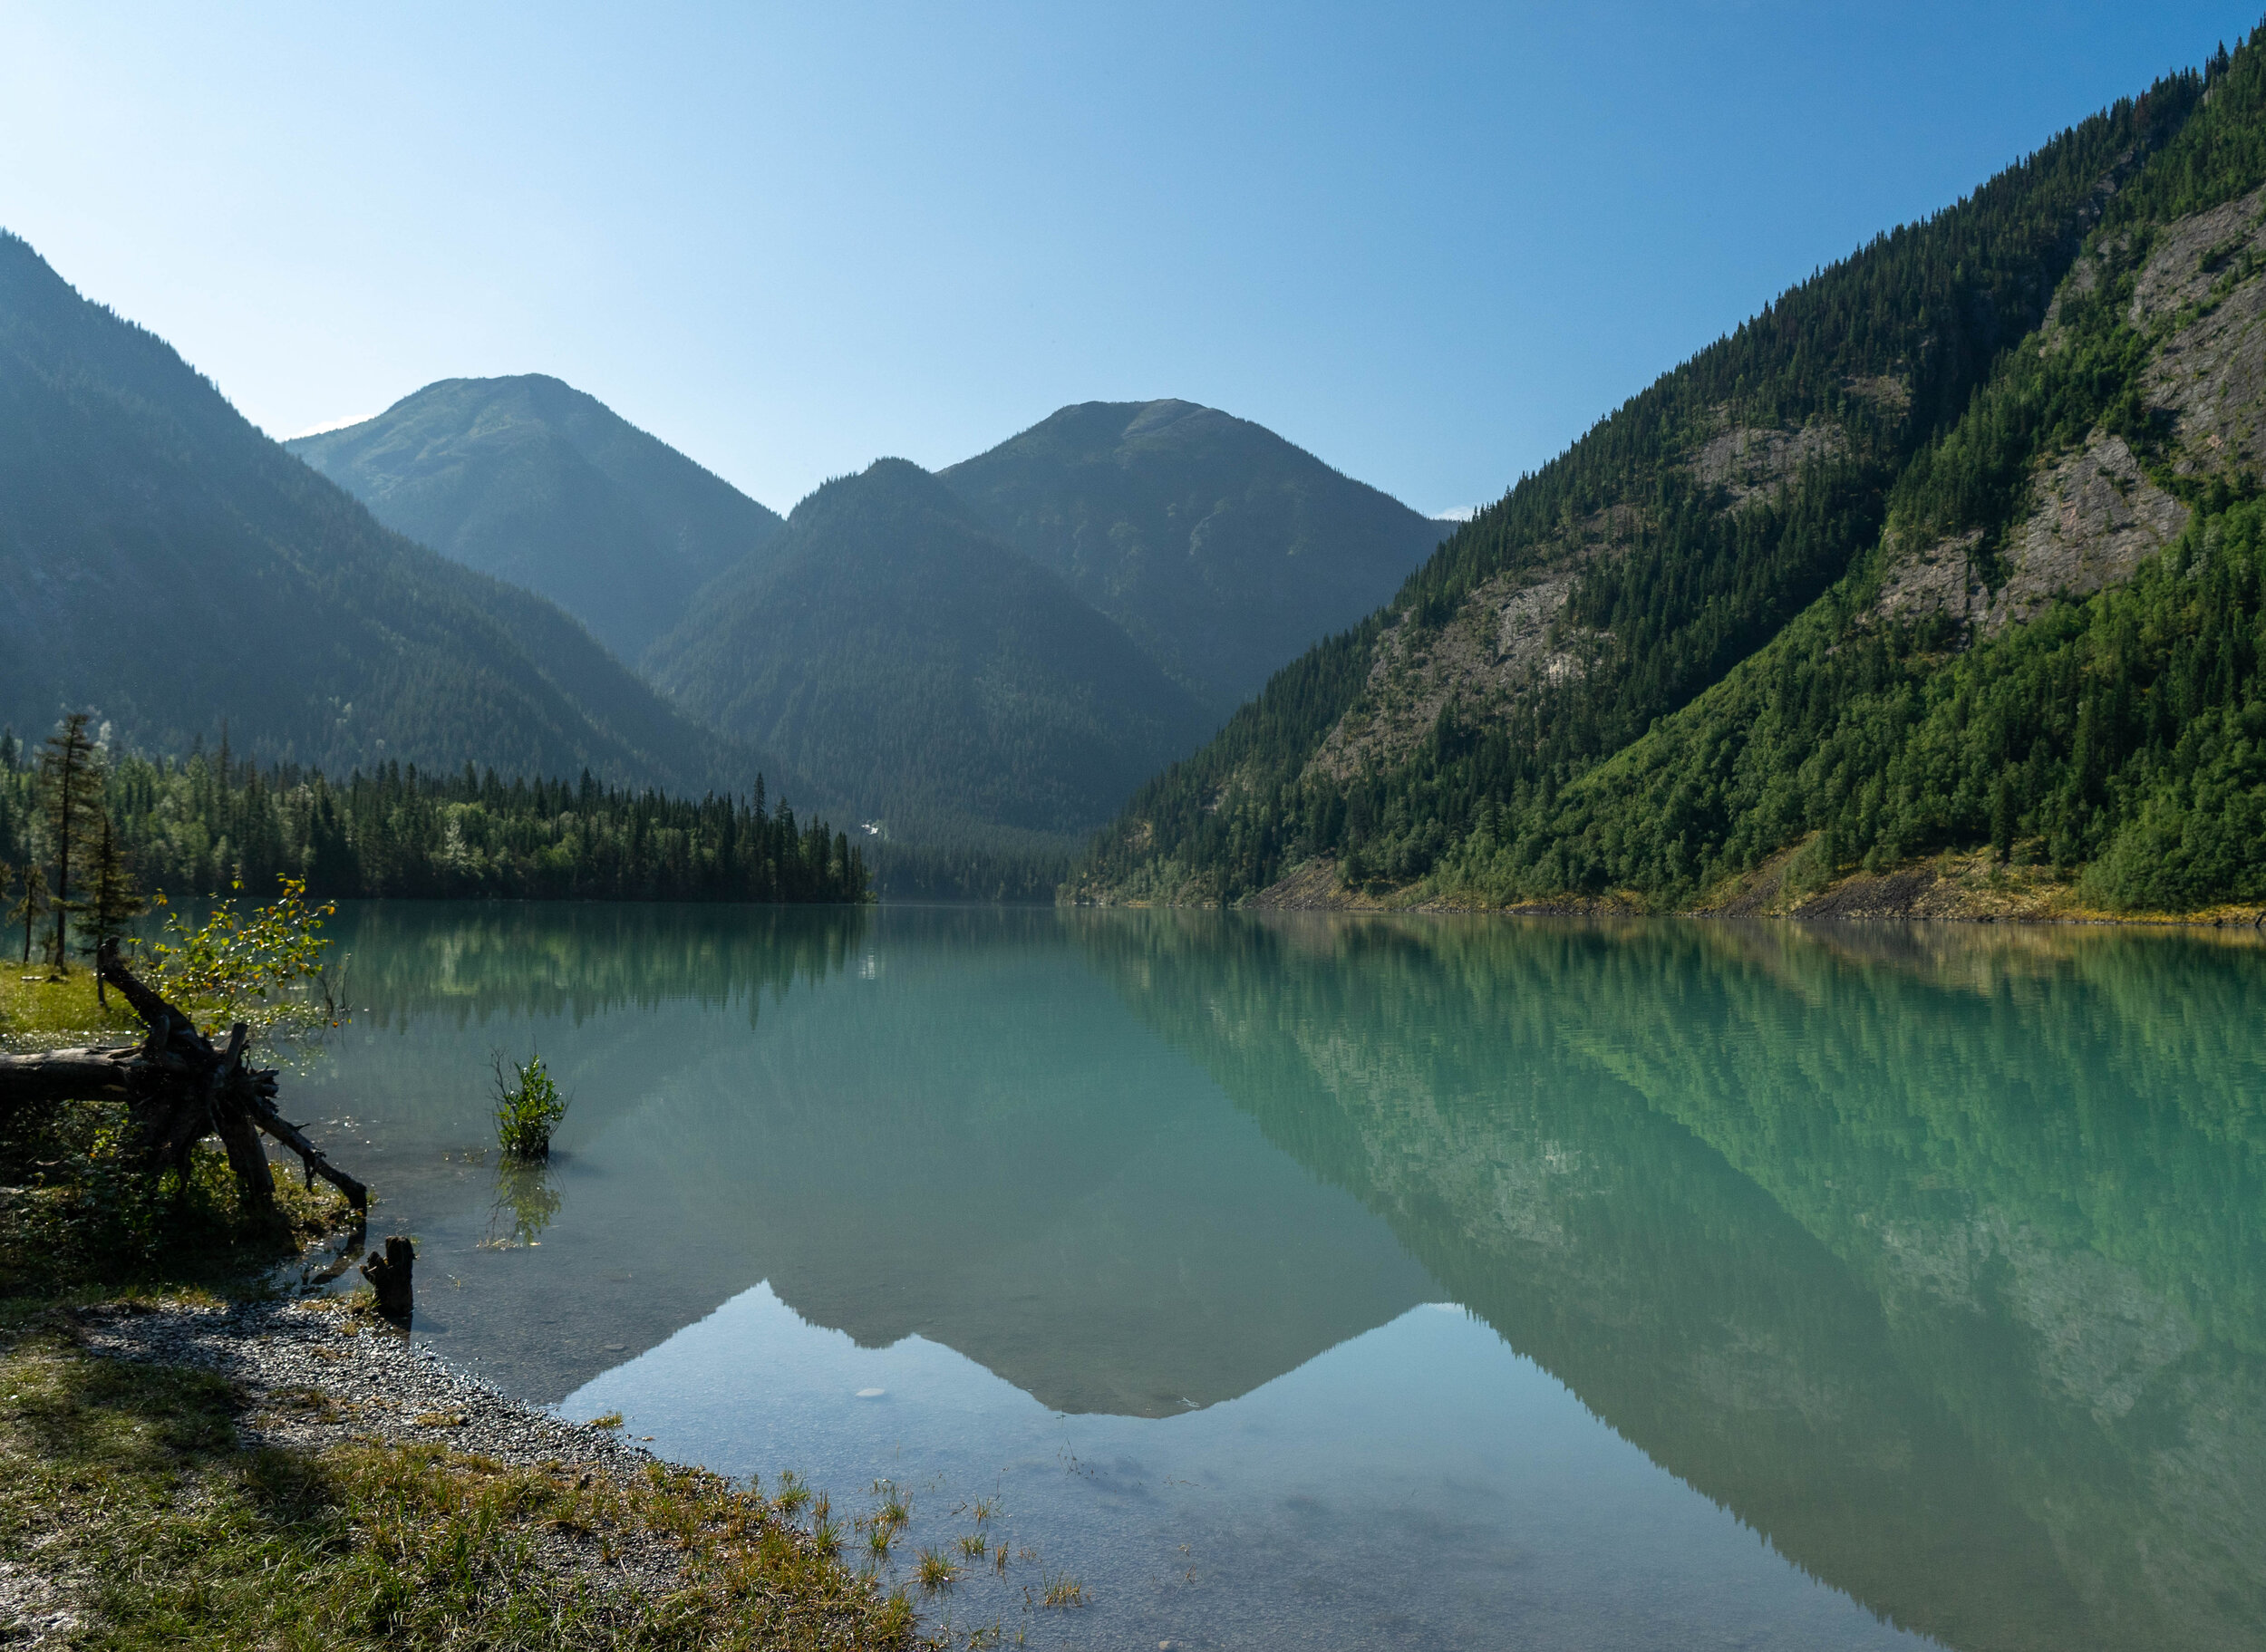 View of Kinney Lake on our hike out.